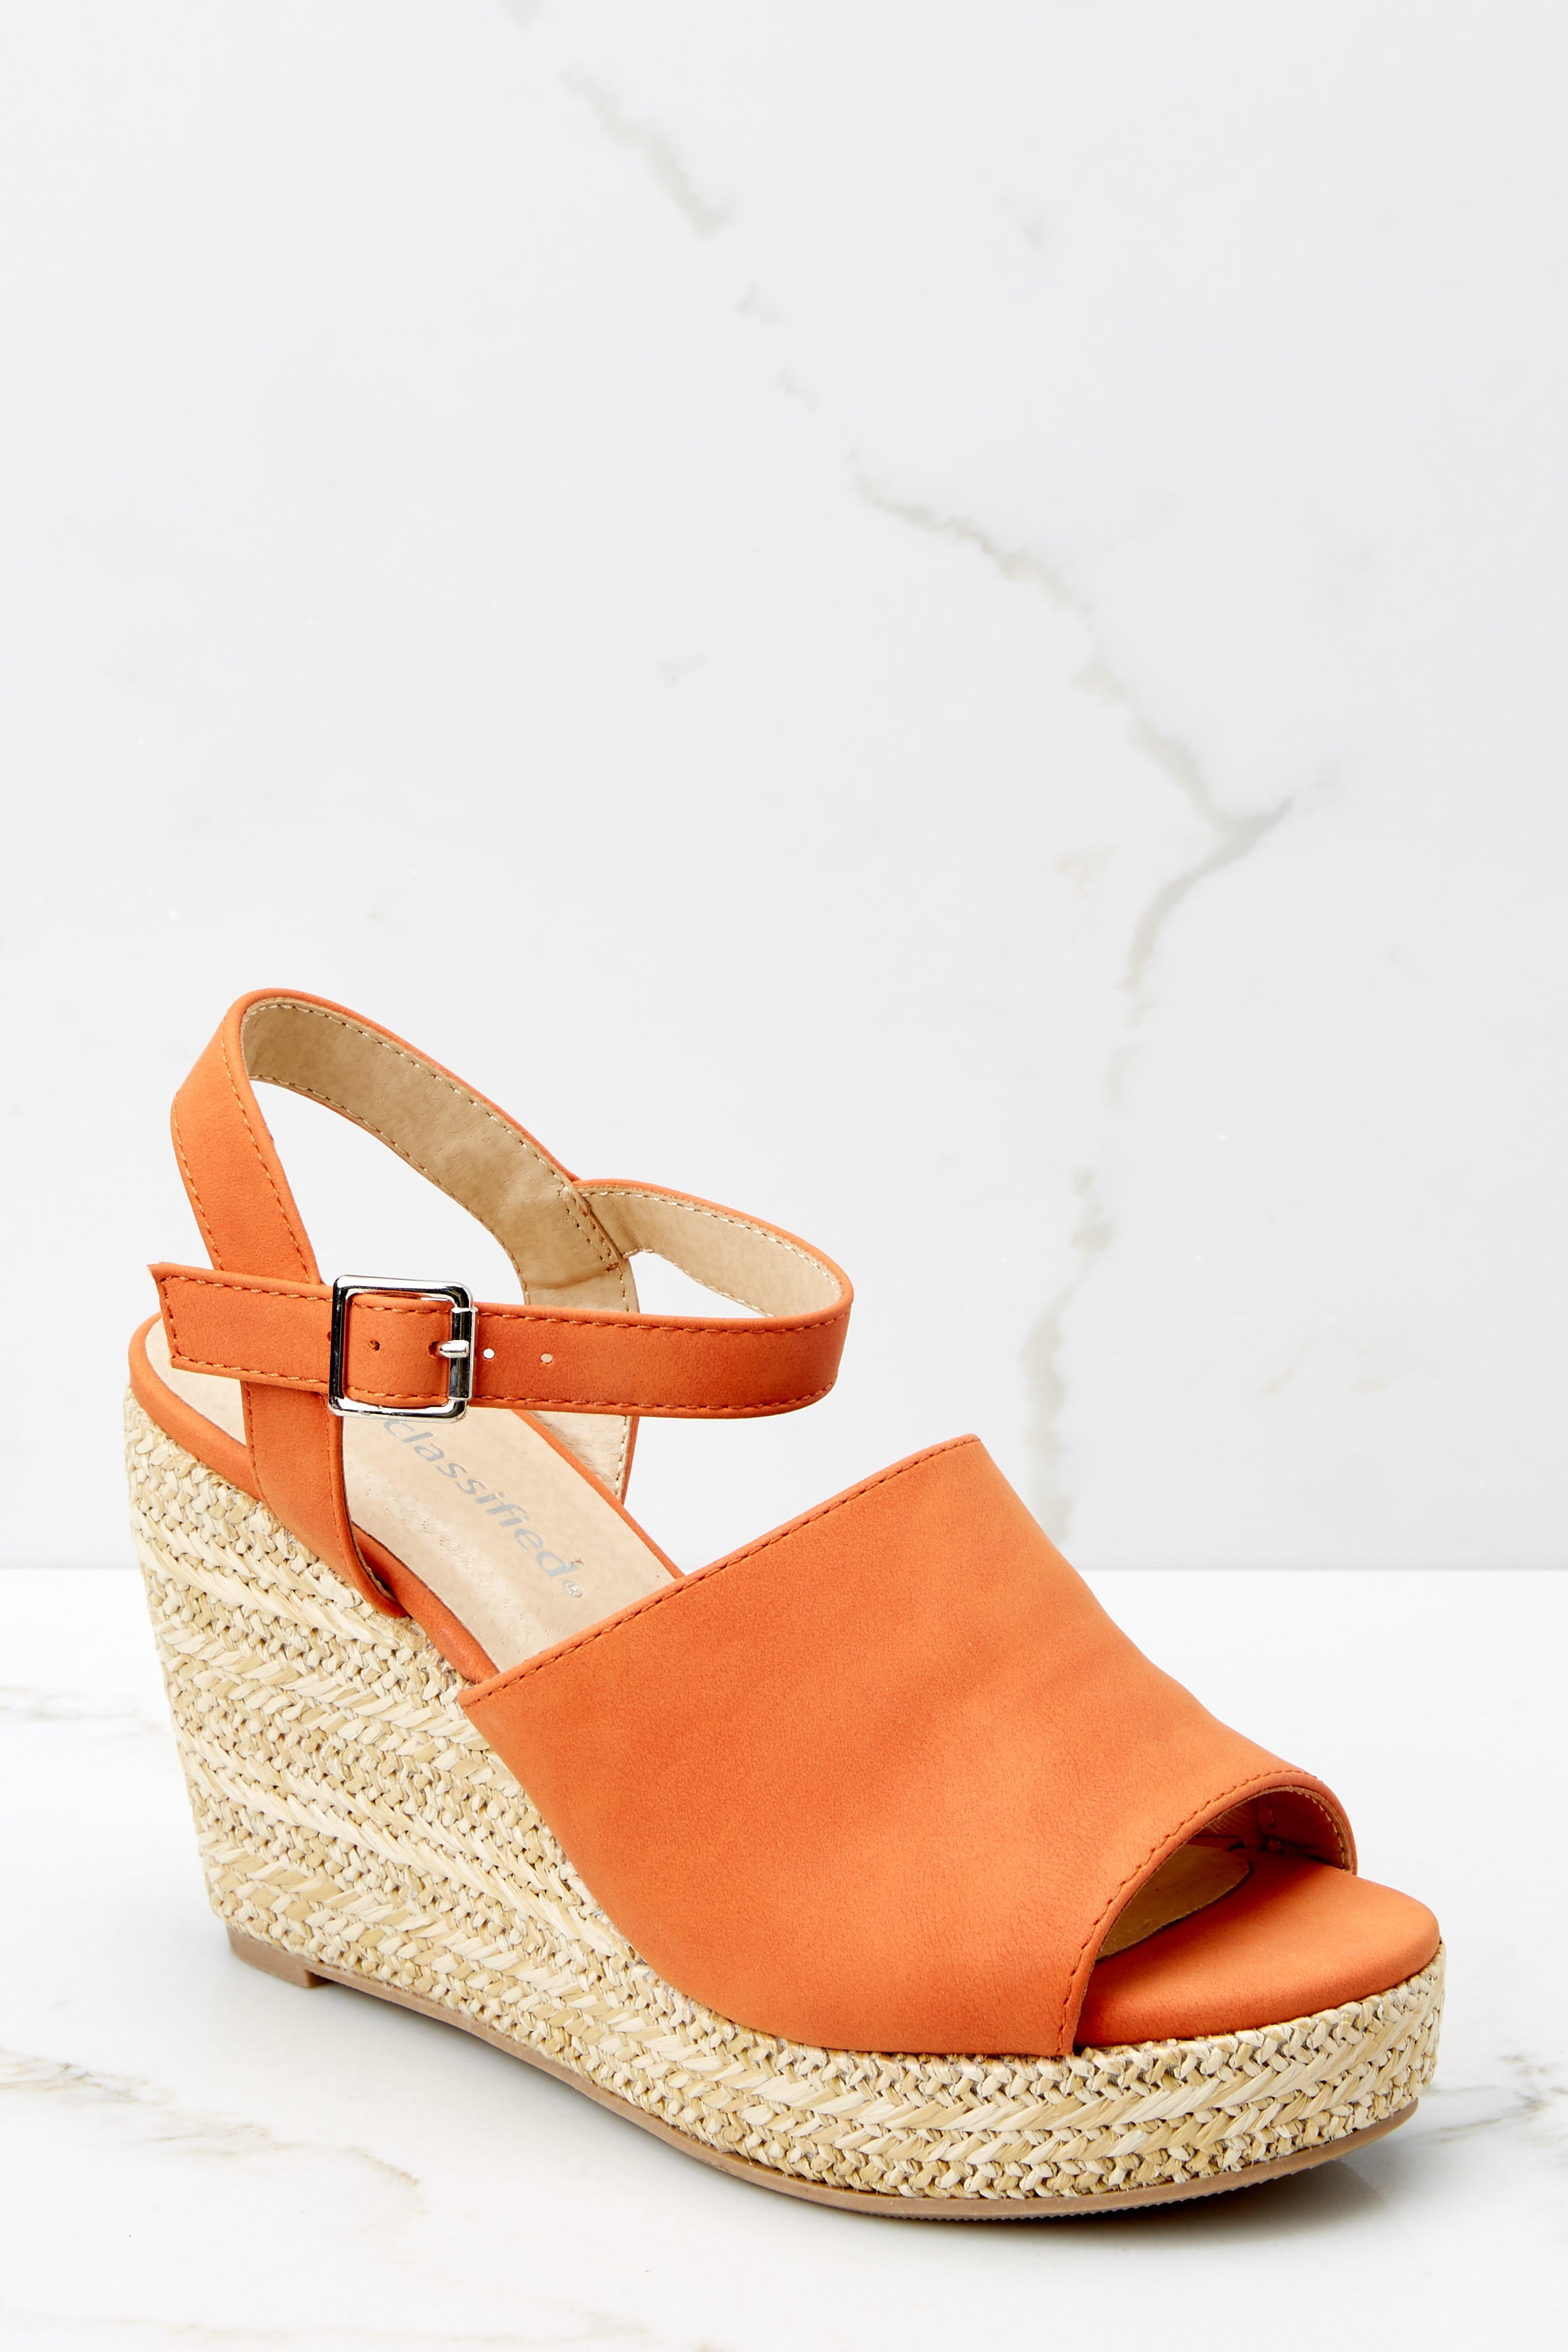 1 Walking On Sunshine Coral Orange Platform Wedges at reddress.com